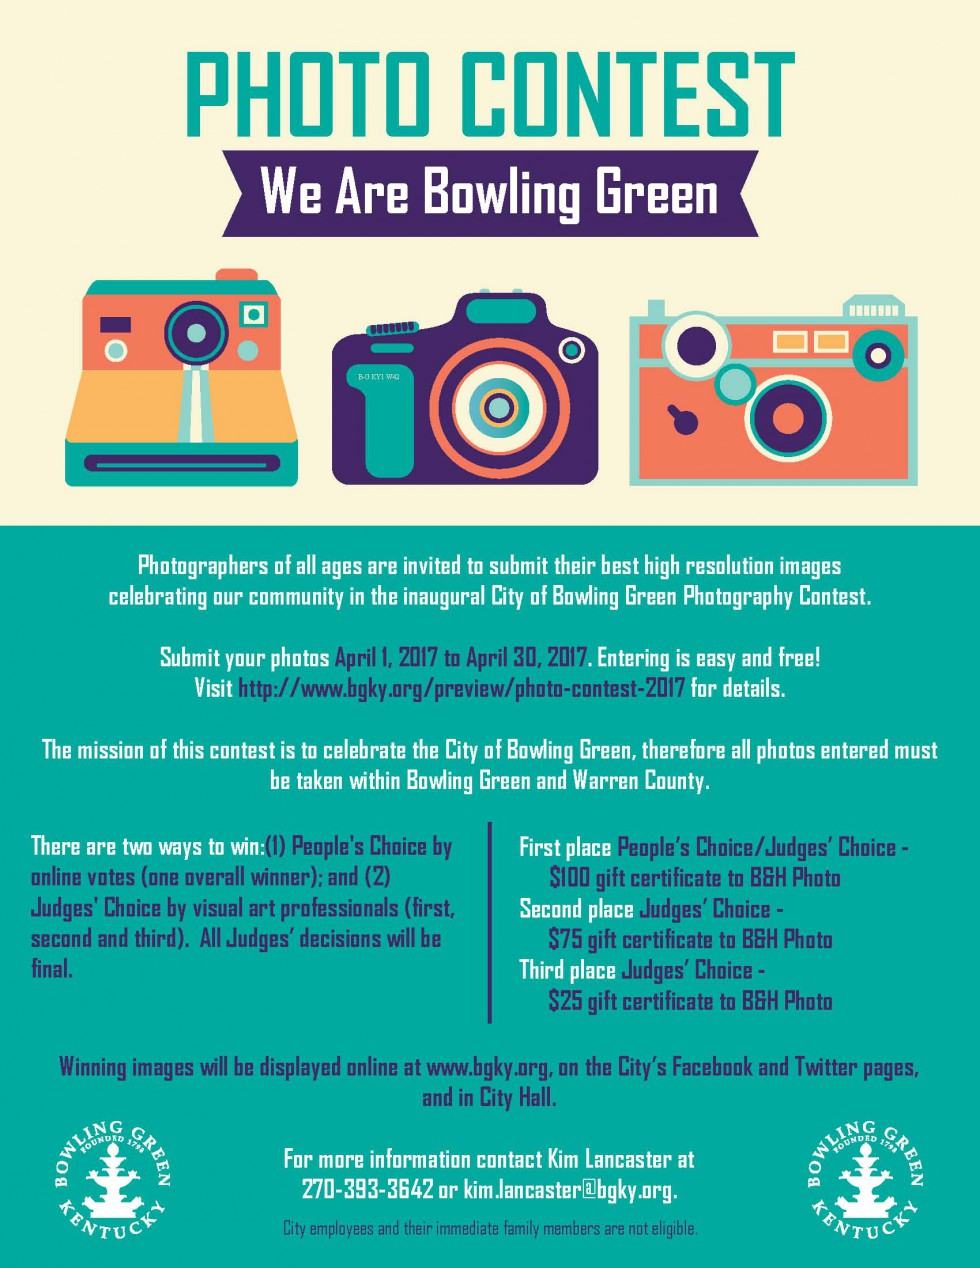 WE ARE BOWLING GREEN PHOTO CONTEST SUBMISSION DEADLINE – THIS WEEKEND